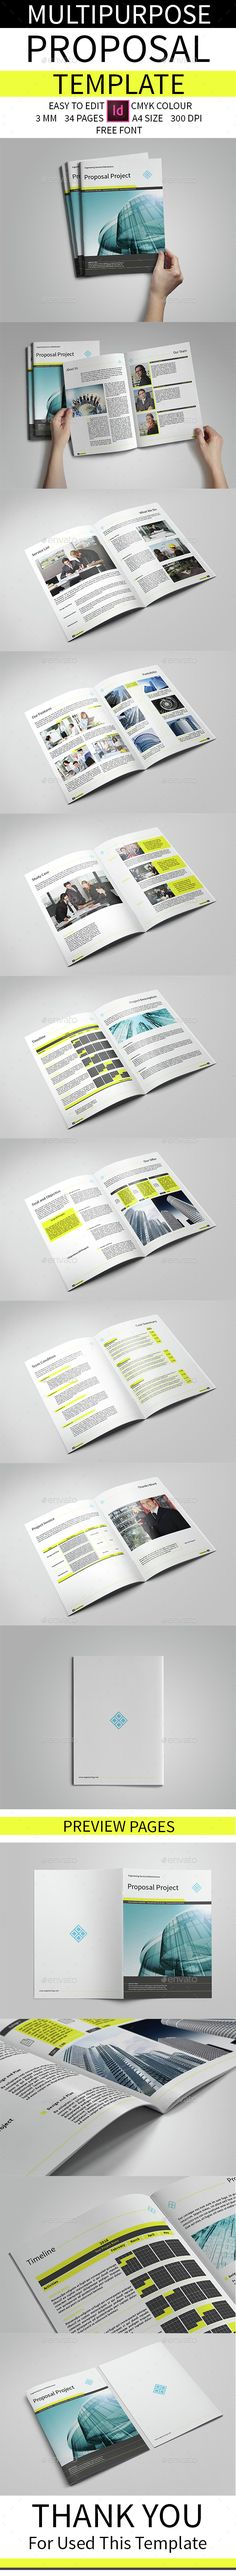 Daleman Proposal Template | Proposal templates and Business proposal